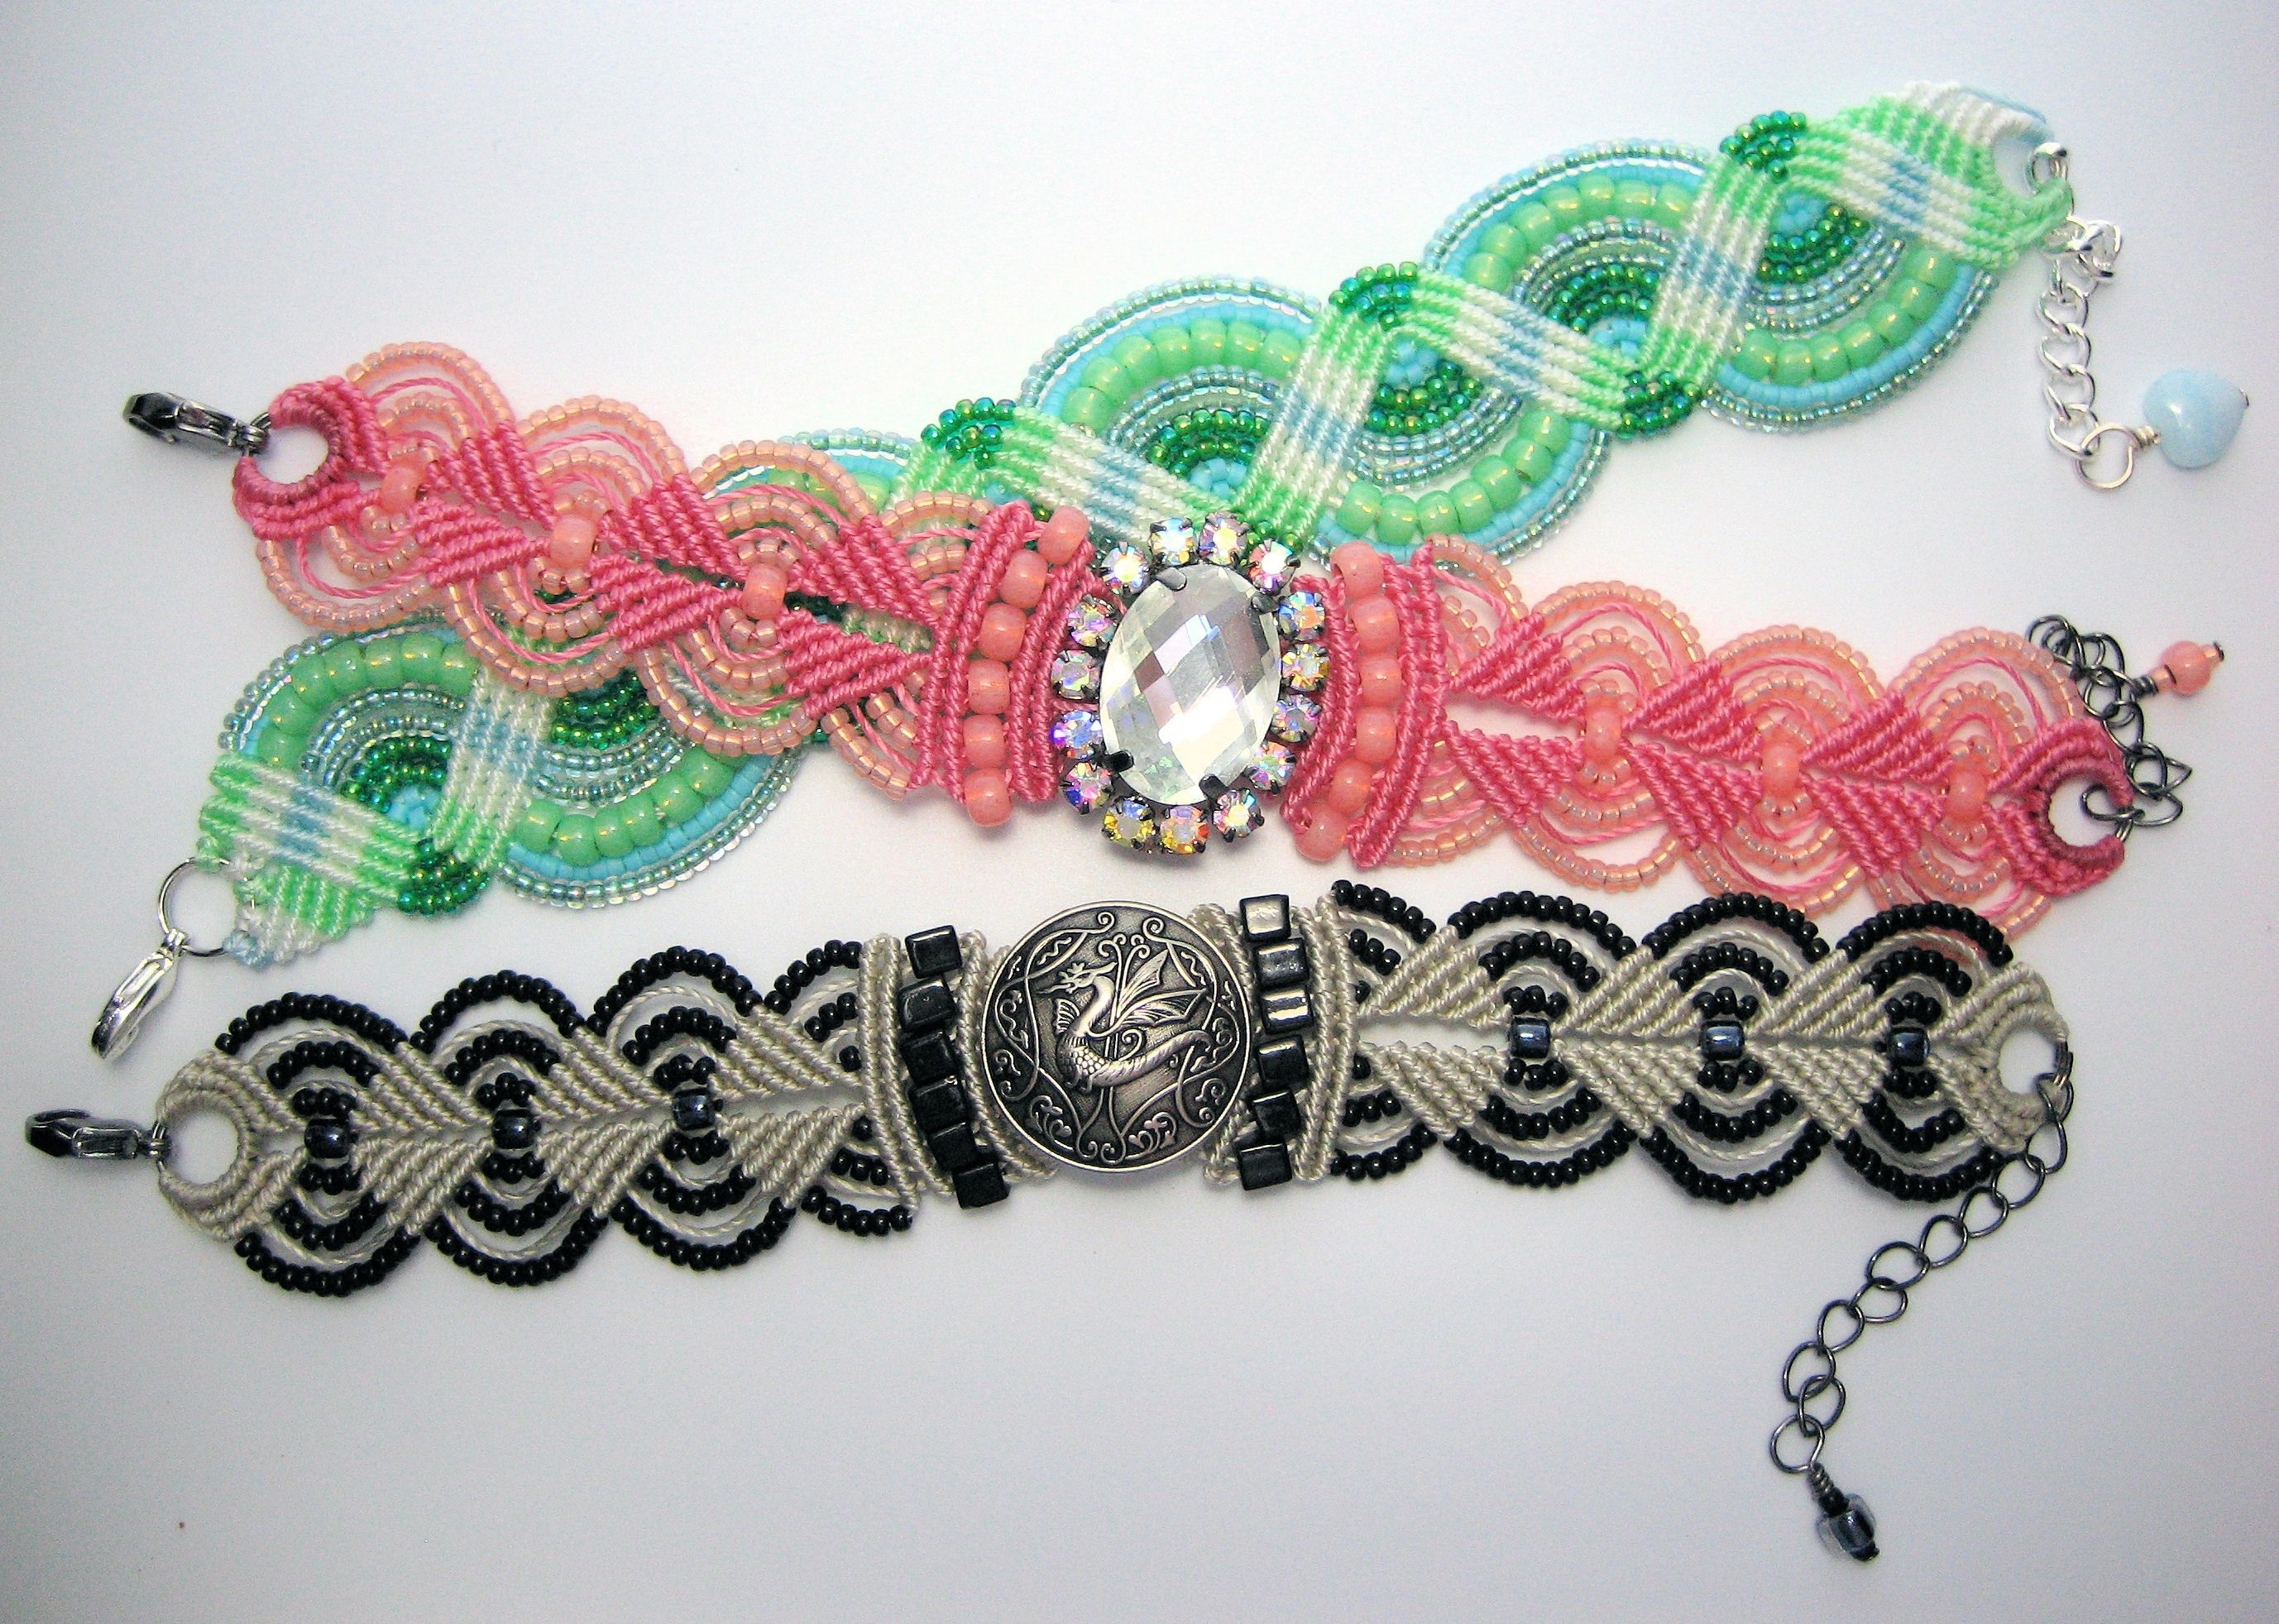 macrame bracelet patterns hemp macrame patterns on macrame jewelry macrame 4318